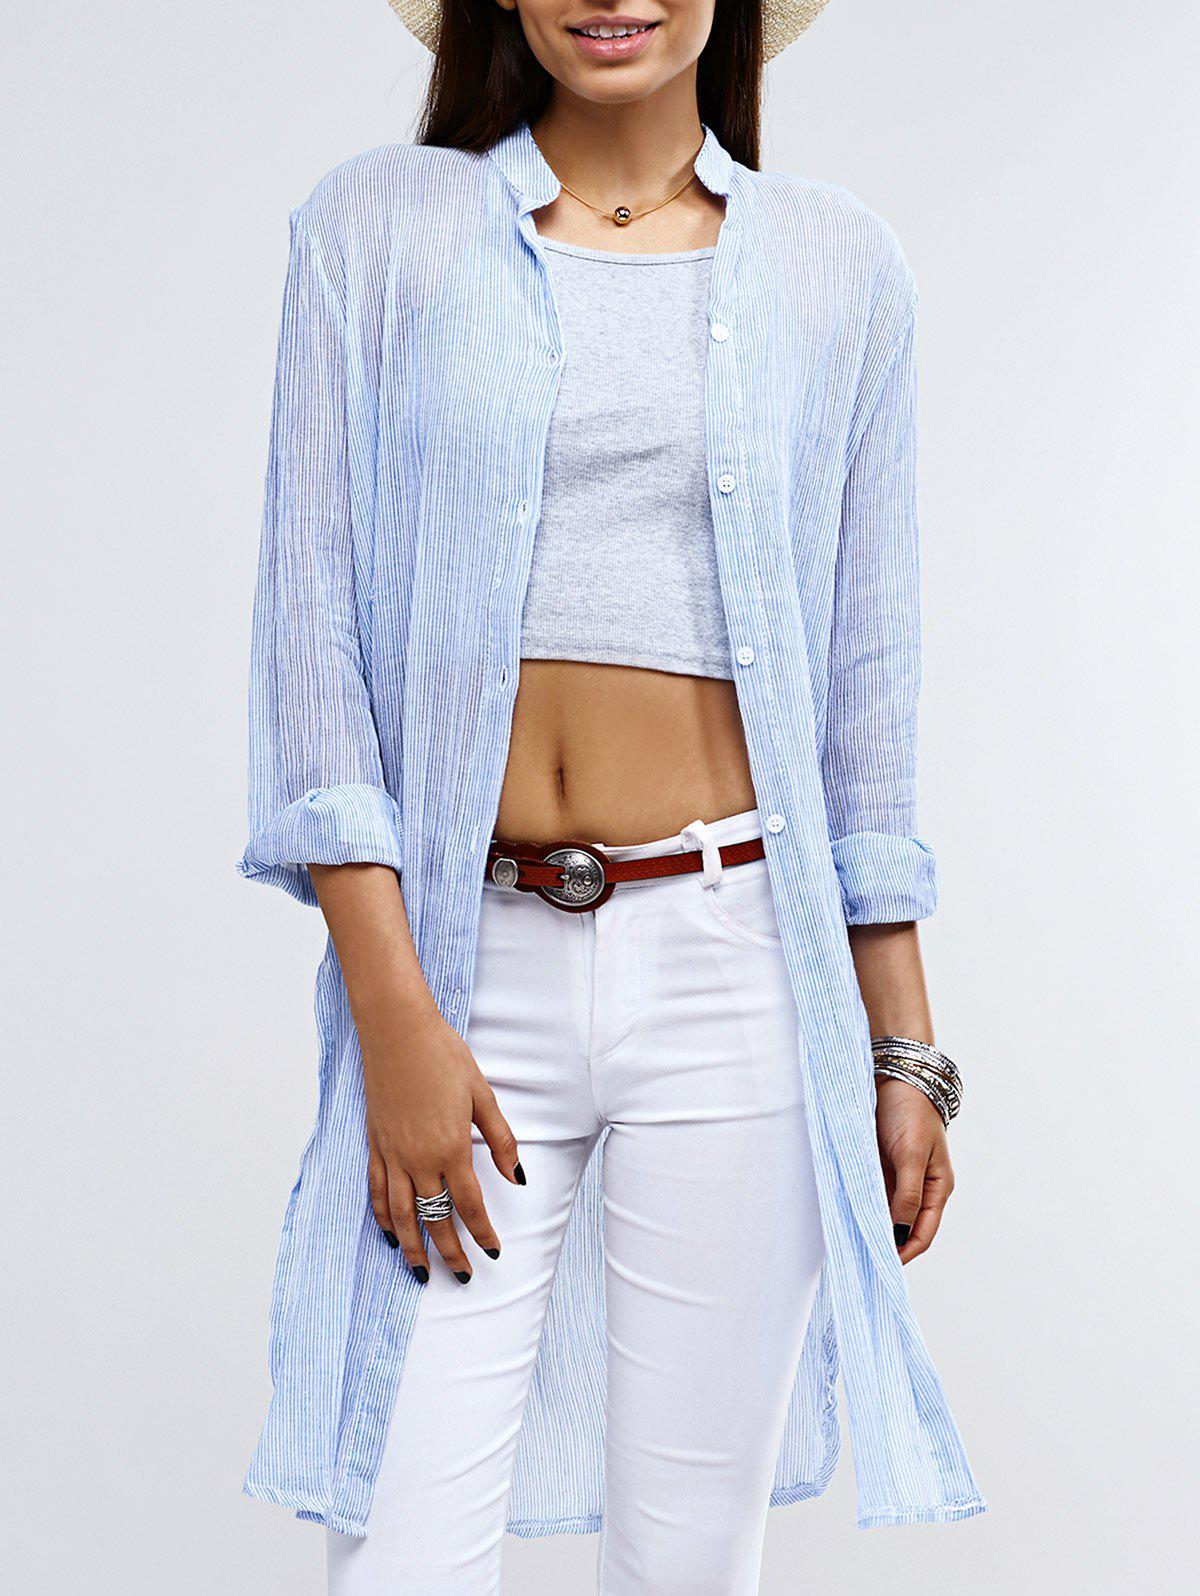 Fashionable Women's Stand Collar Striped Shirt - BLUE ONE SIZE(FIT SIZE XS TO M)